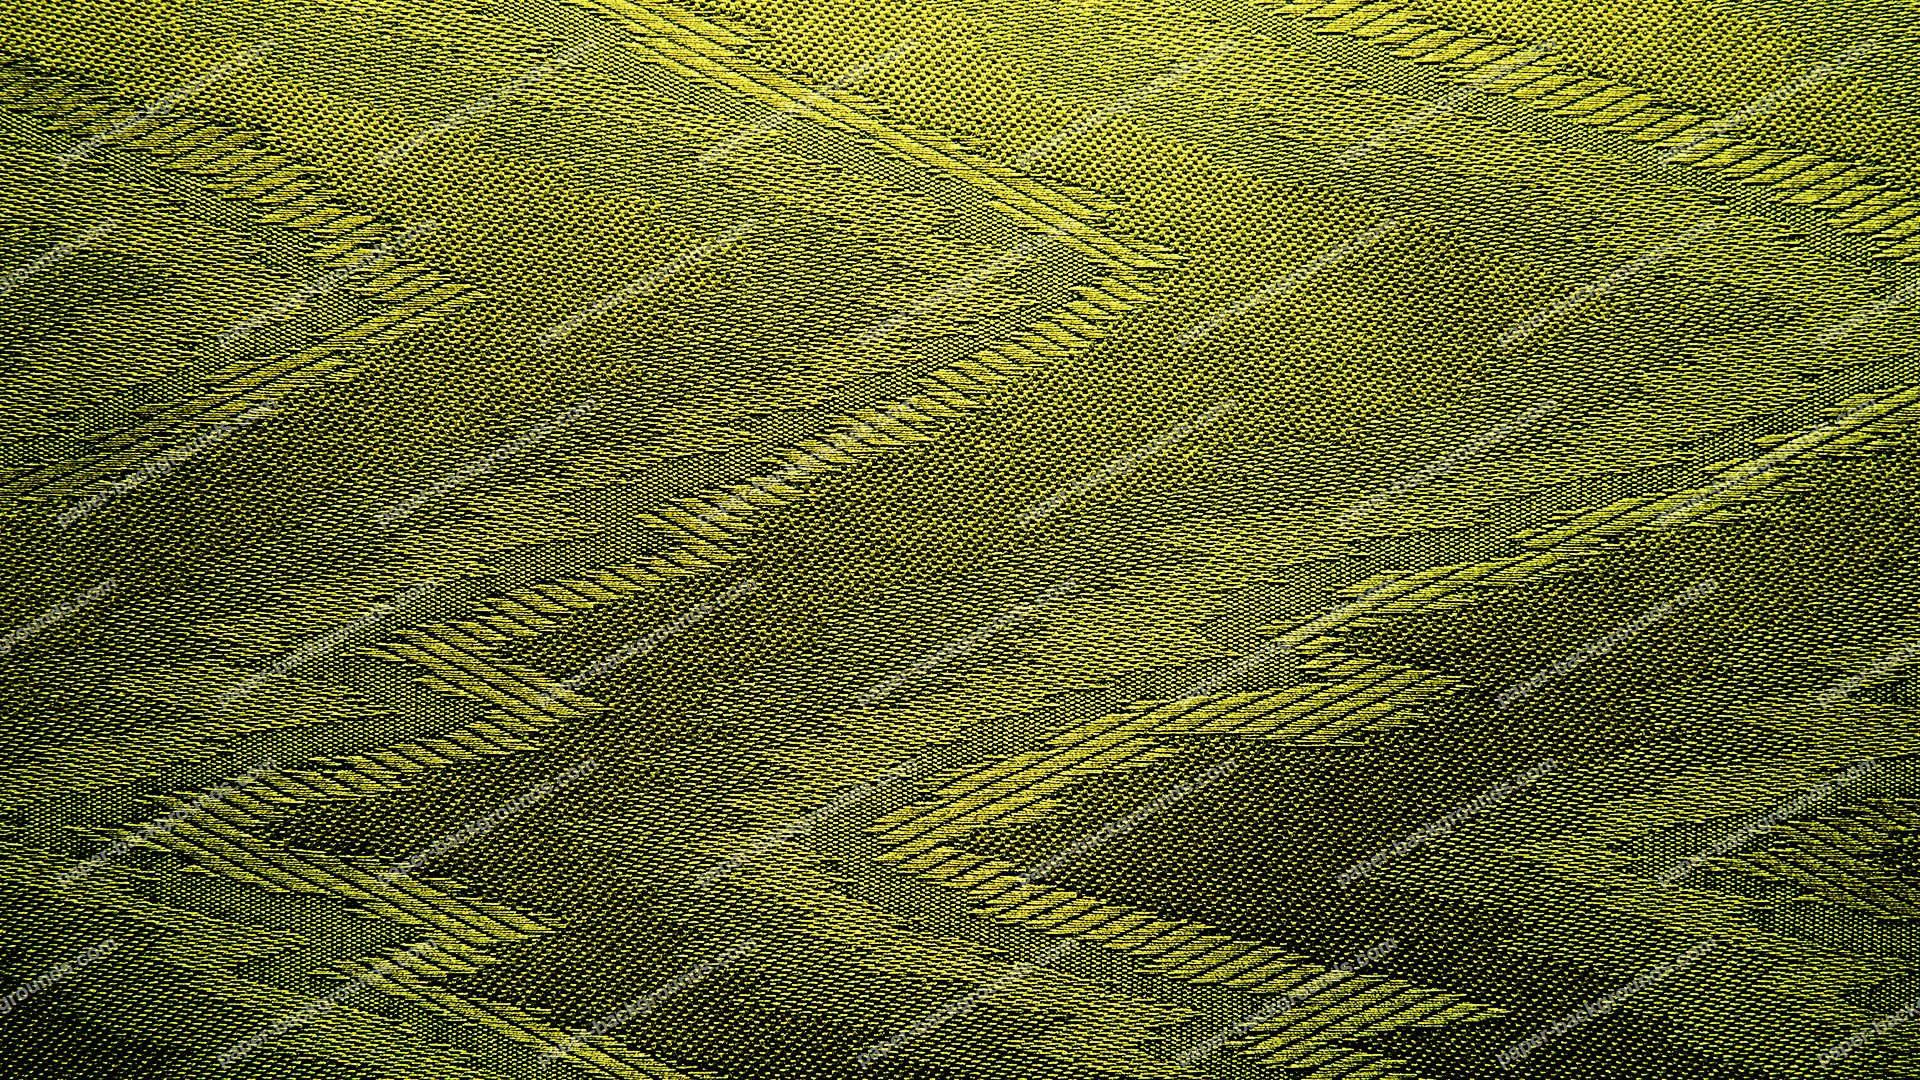 Green Canvas With Zigzag Design HD 1920 x 1080p